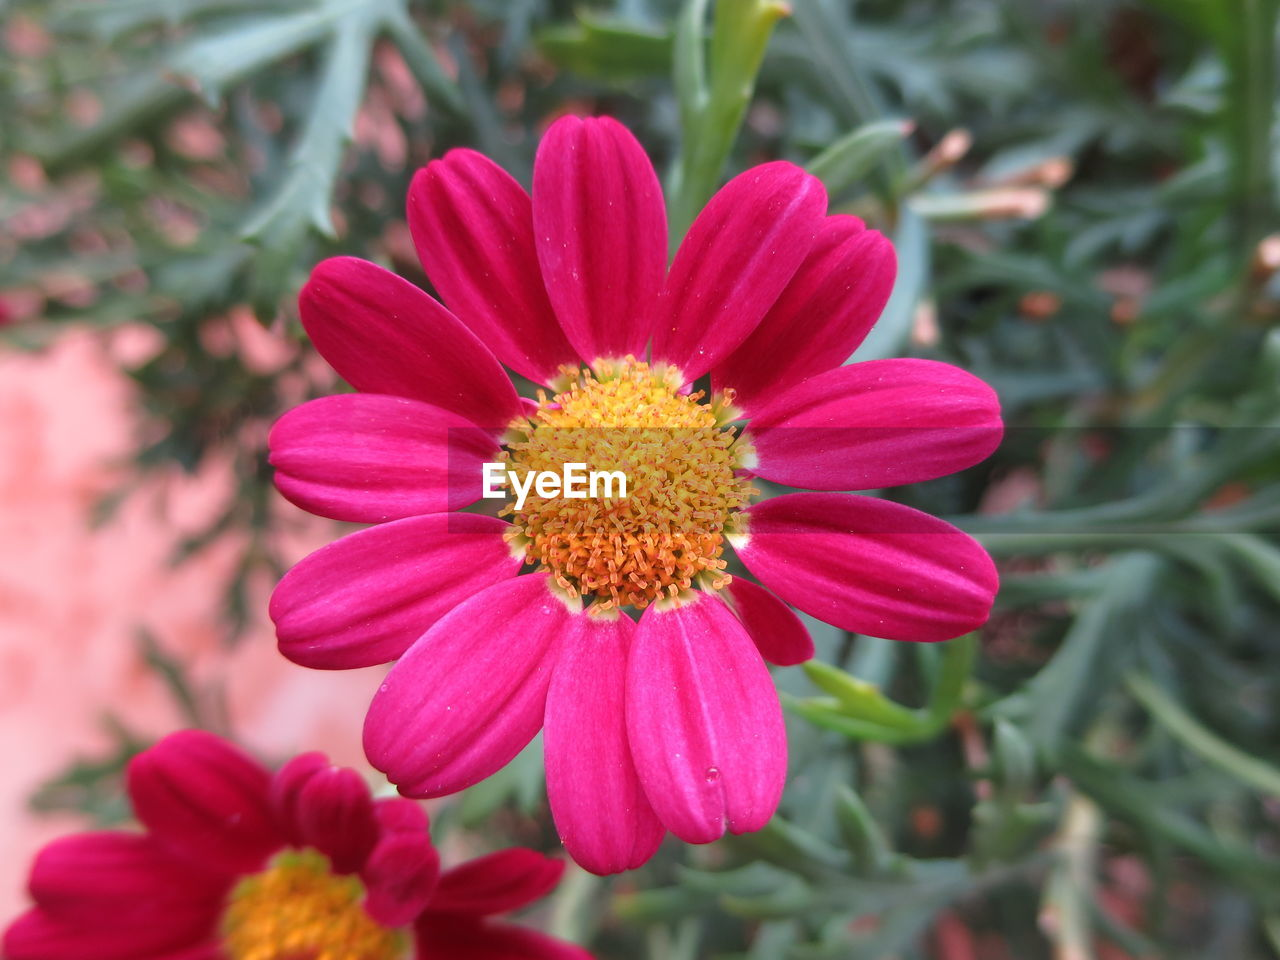 flower, petal, growth, nature, blooming, beauty in nature, fragility, flower head, pink color, freshness, plant, pollen, no people, outdoors, day, zinnia, close-up